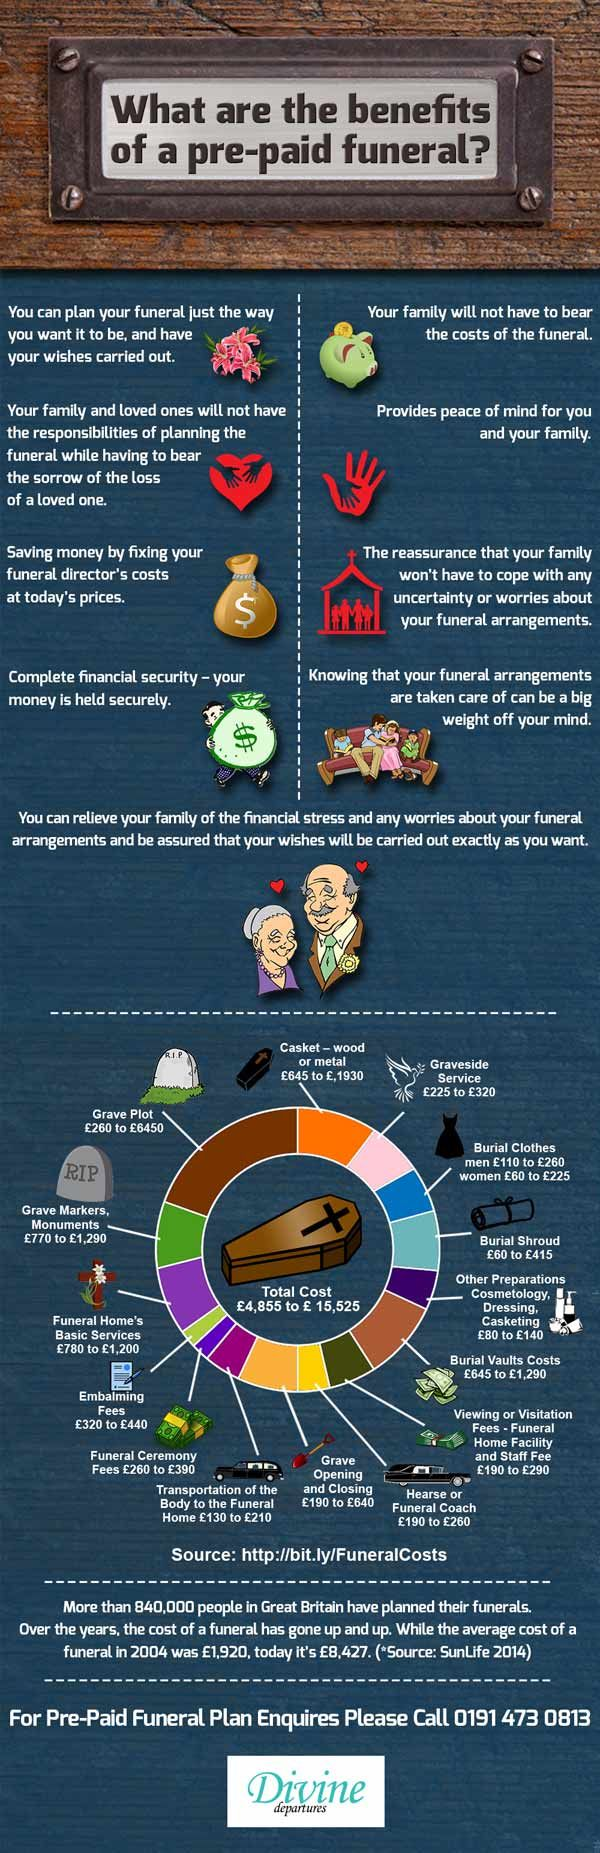 prepaid funeral plans info graphic image